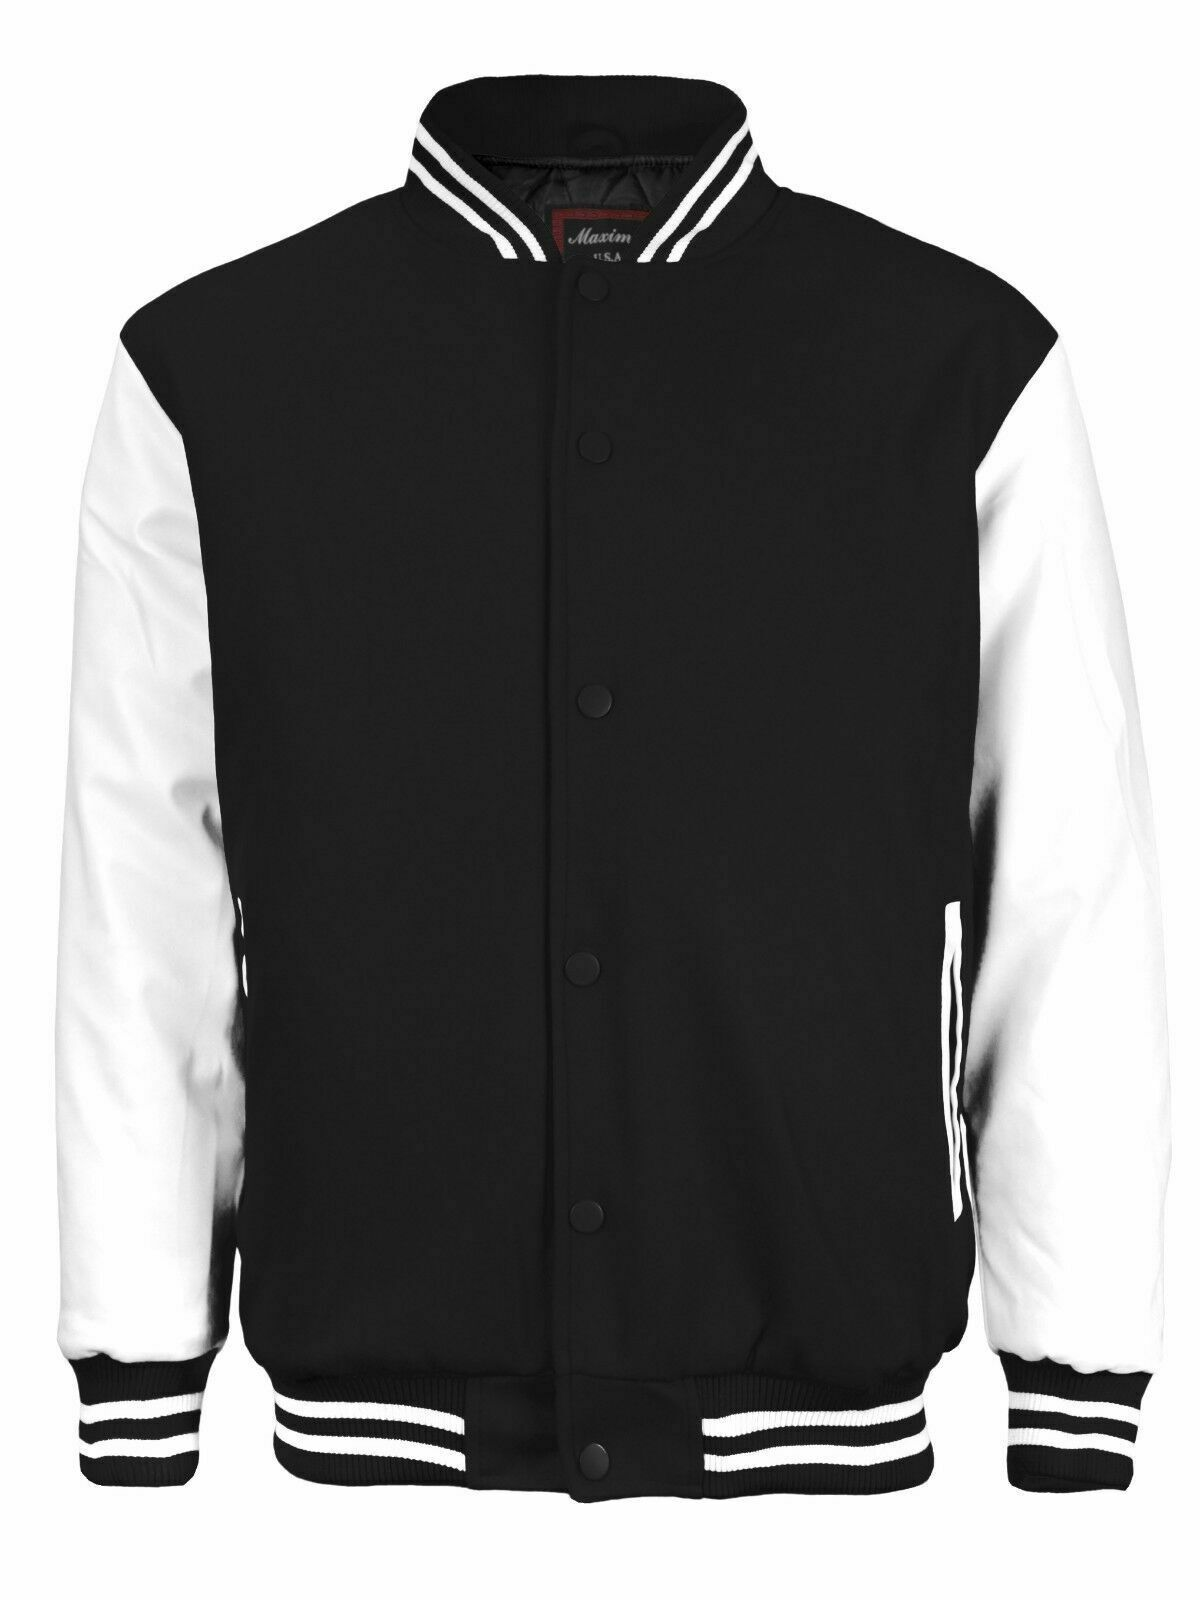 Men's Classic Snap Button Baseball Letterman Black Varsity Jacket w/ Defect